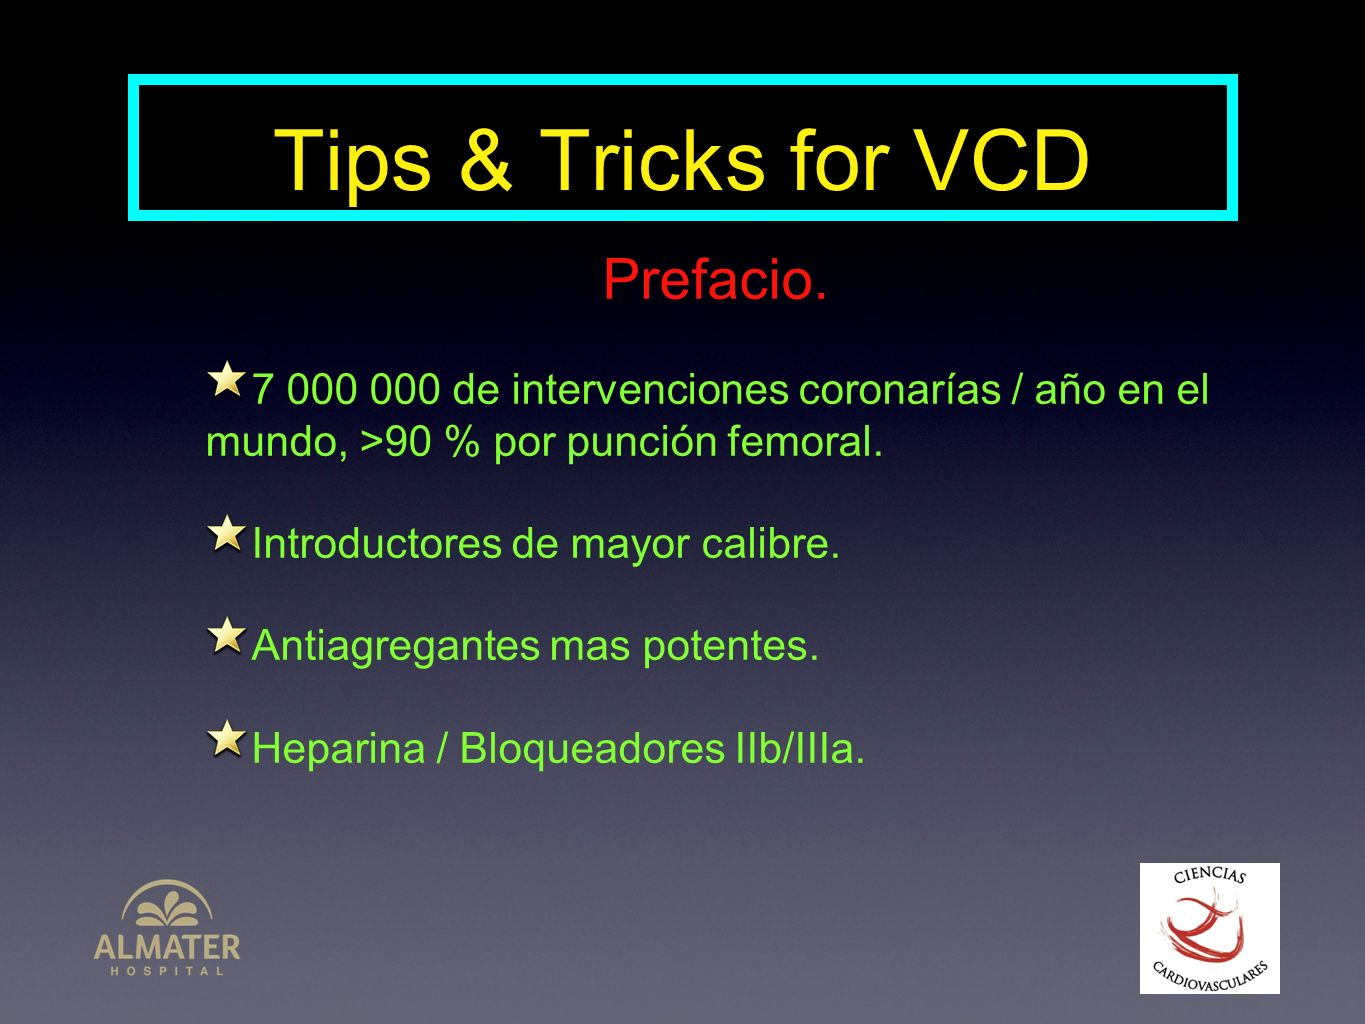 Tips & Tricks for VCD Prefacio.